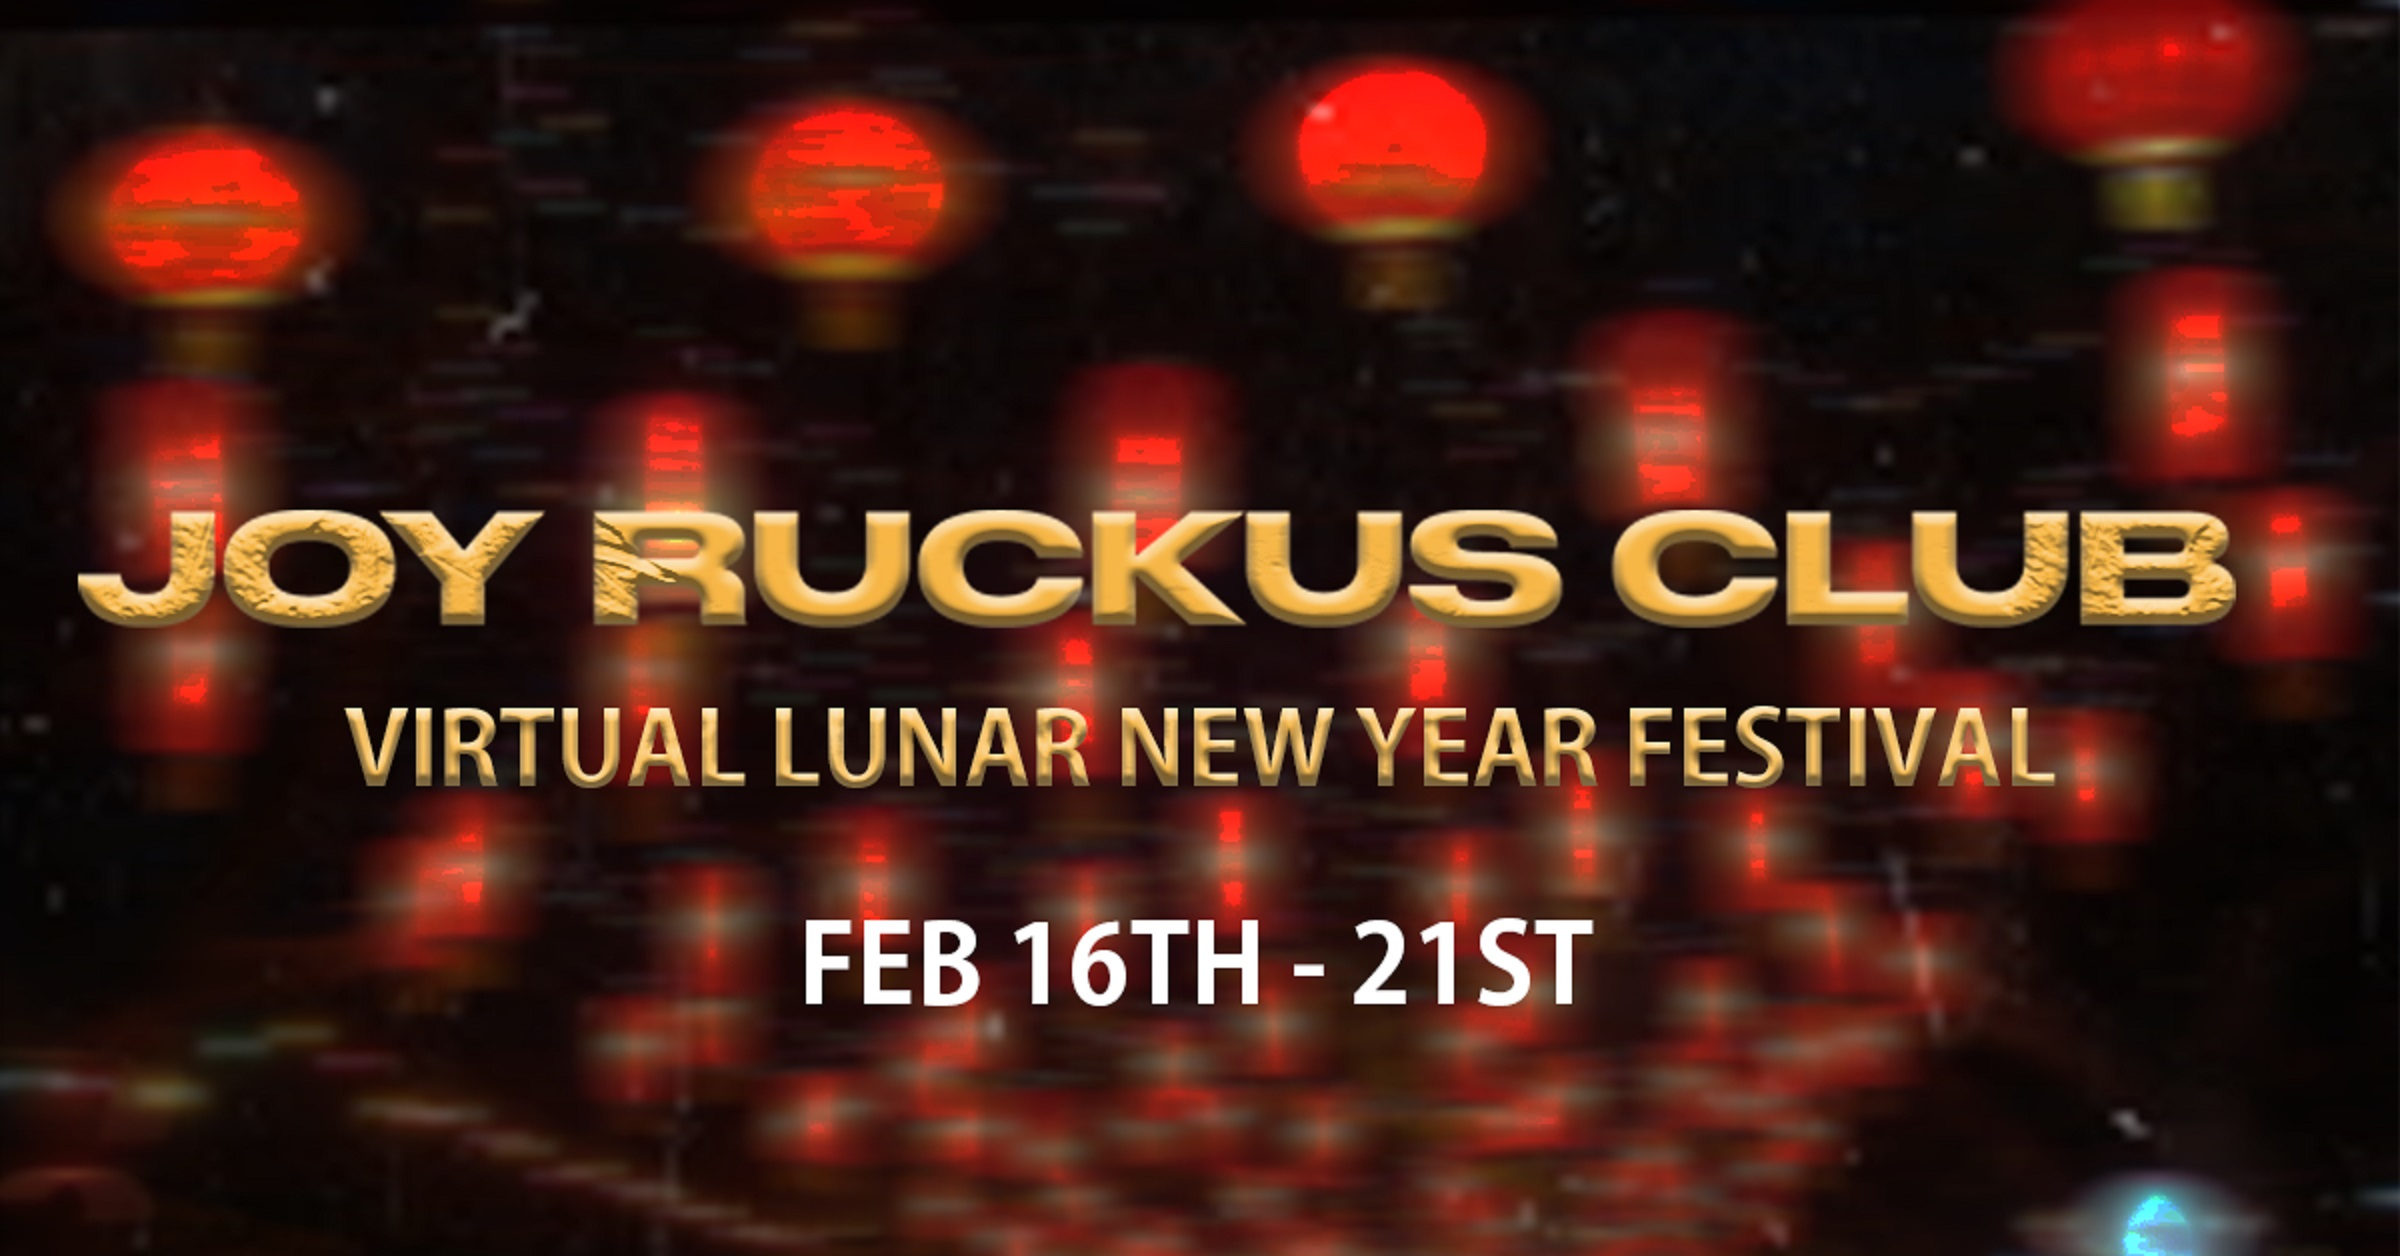 The Joy Rukus Club 3: Virtual Lunar New Year Festival, 180 Artists, Six Days, Nine Stages